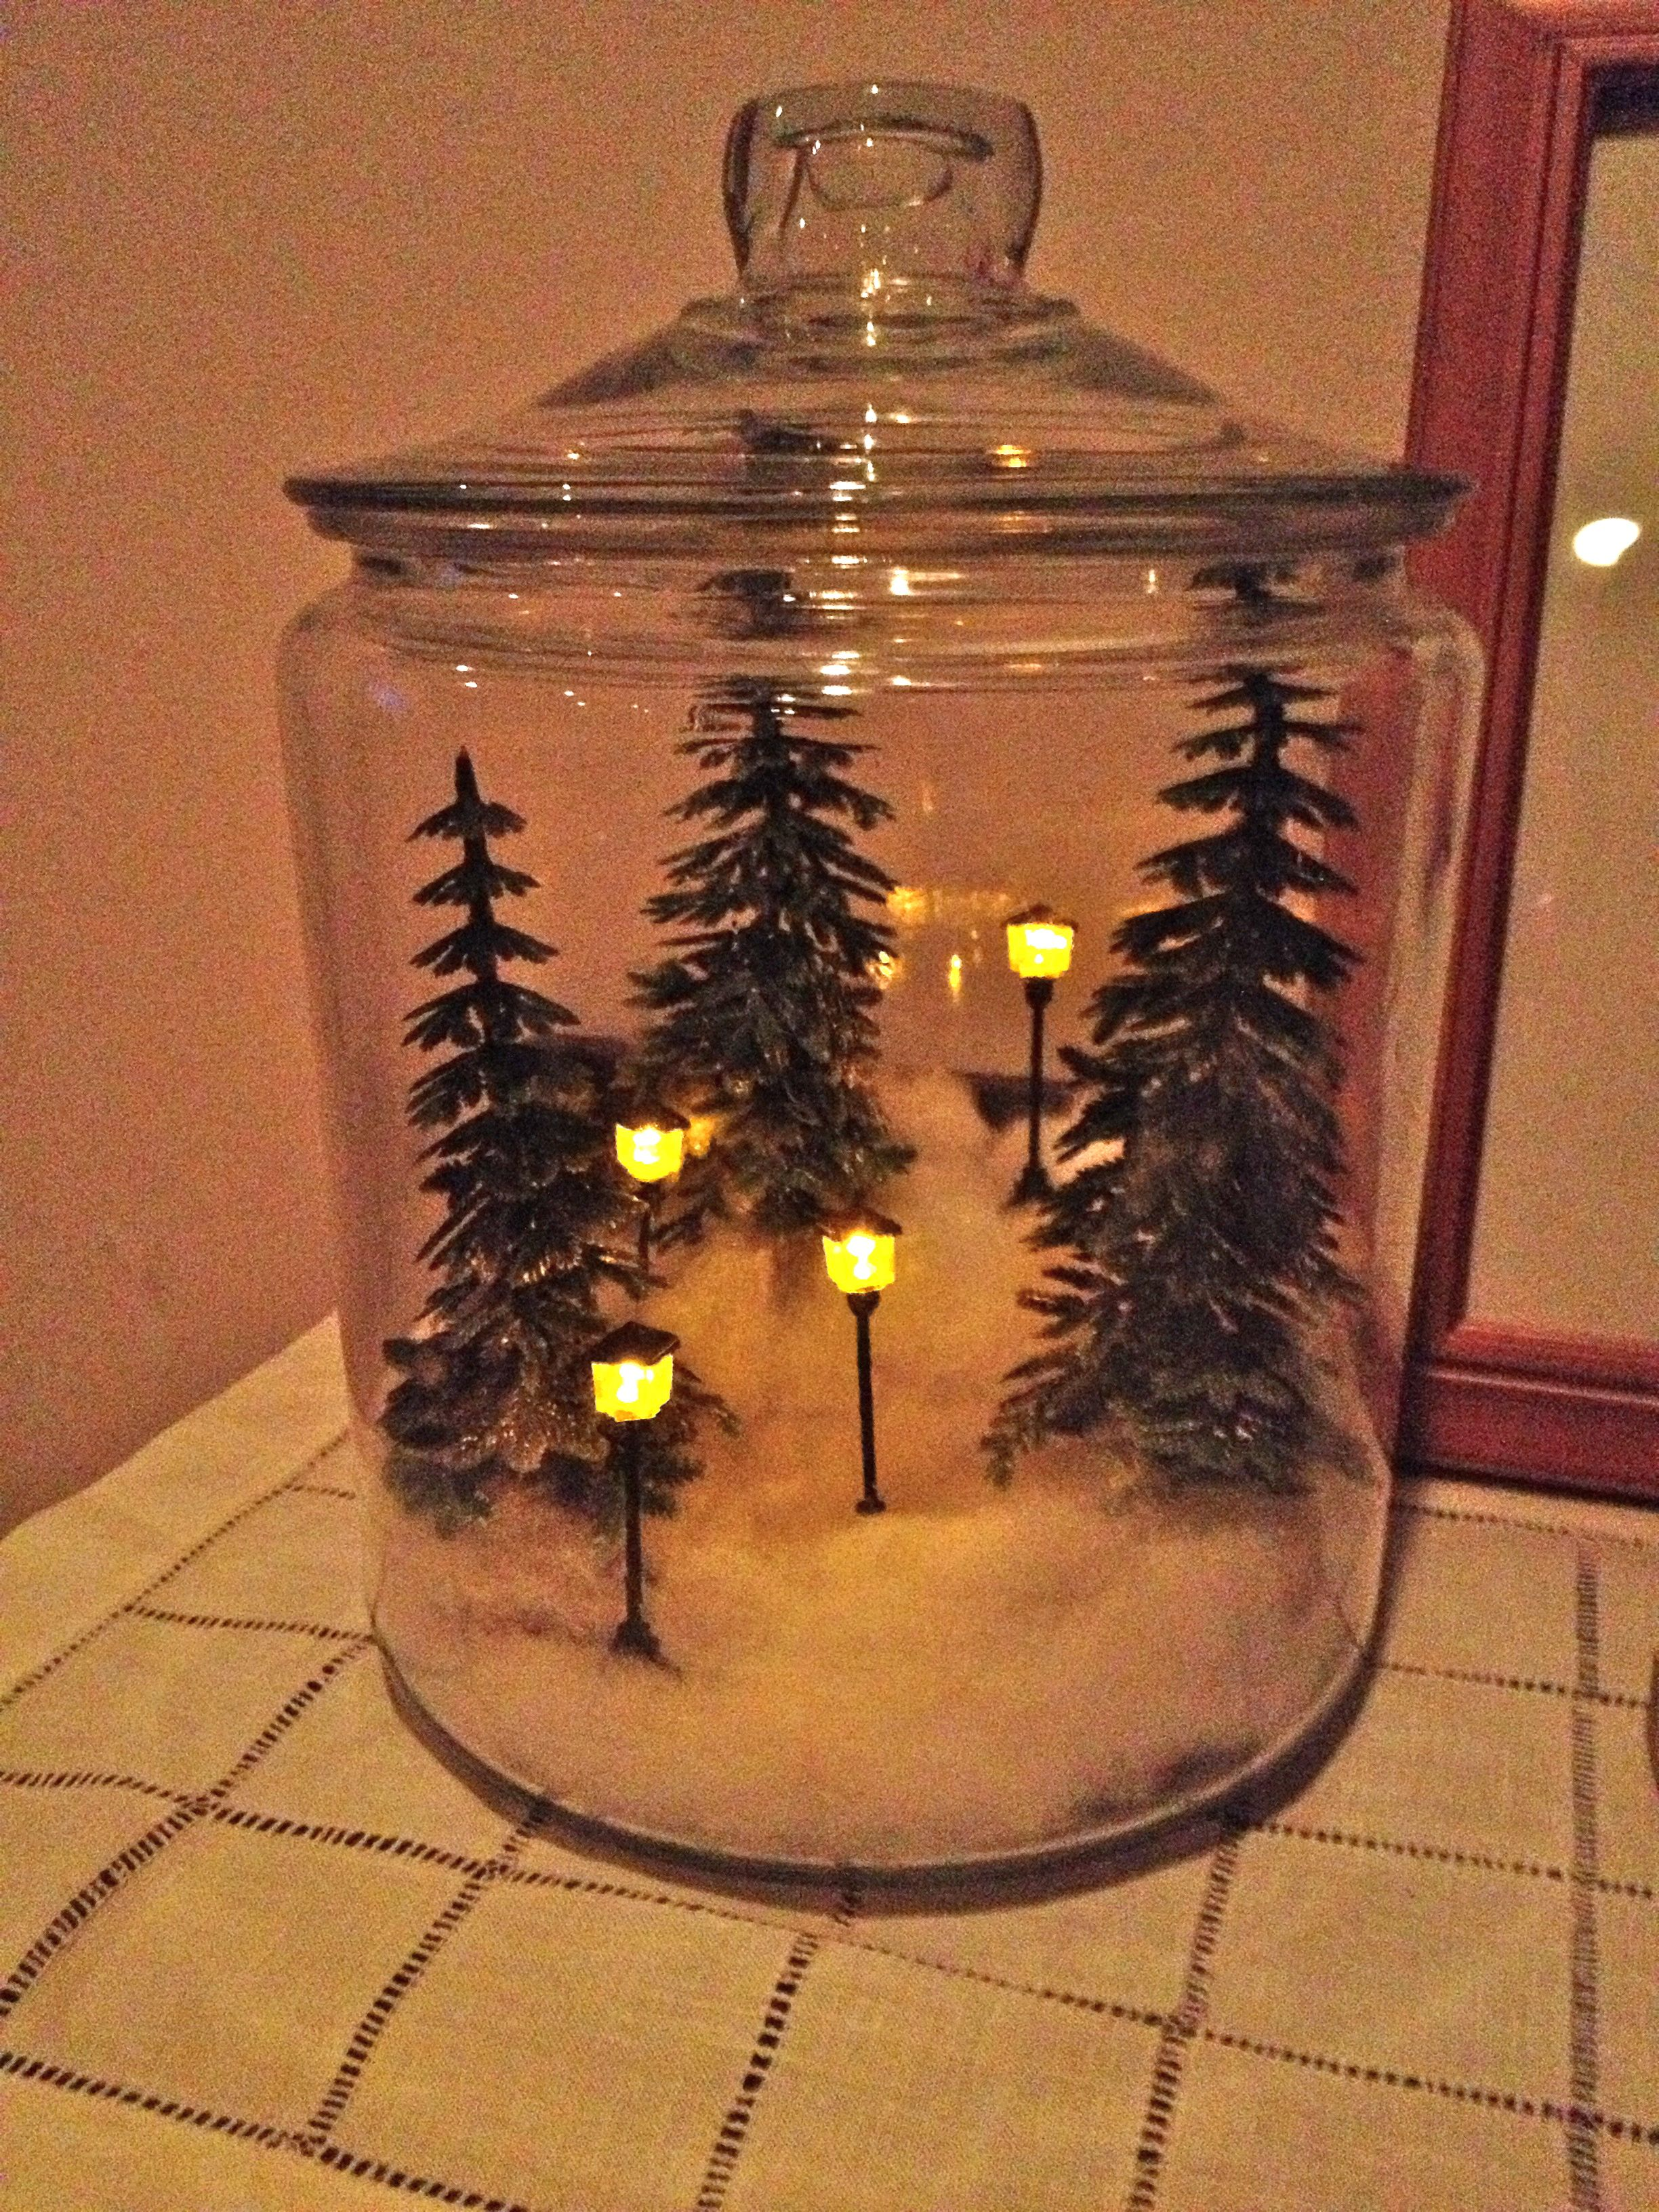 My Mini Winter Wonderland All Tucked Into A Large Glass Cookie Jar Christmas Jars Christmas Centerpieces Christmas Decorations Rustic